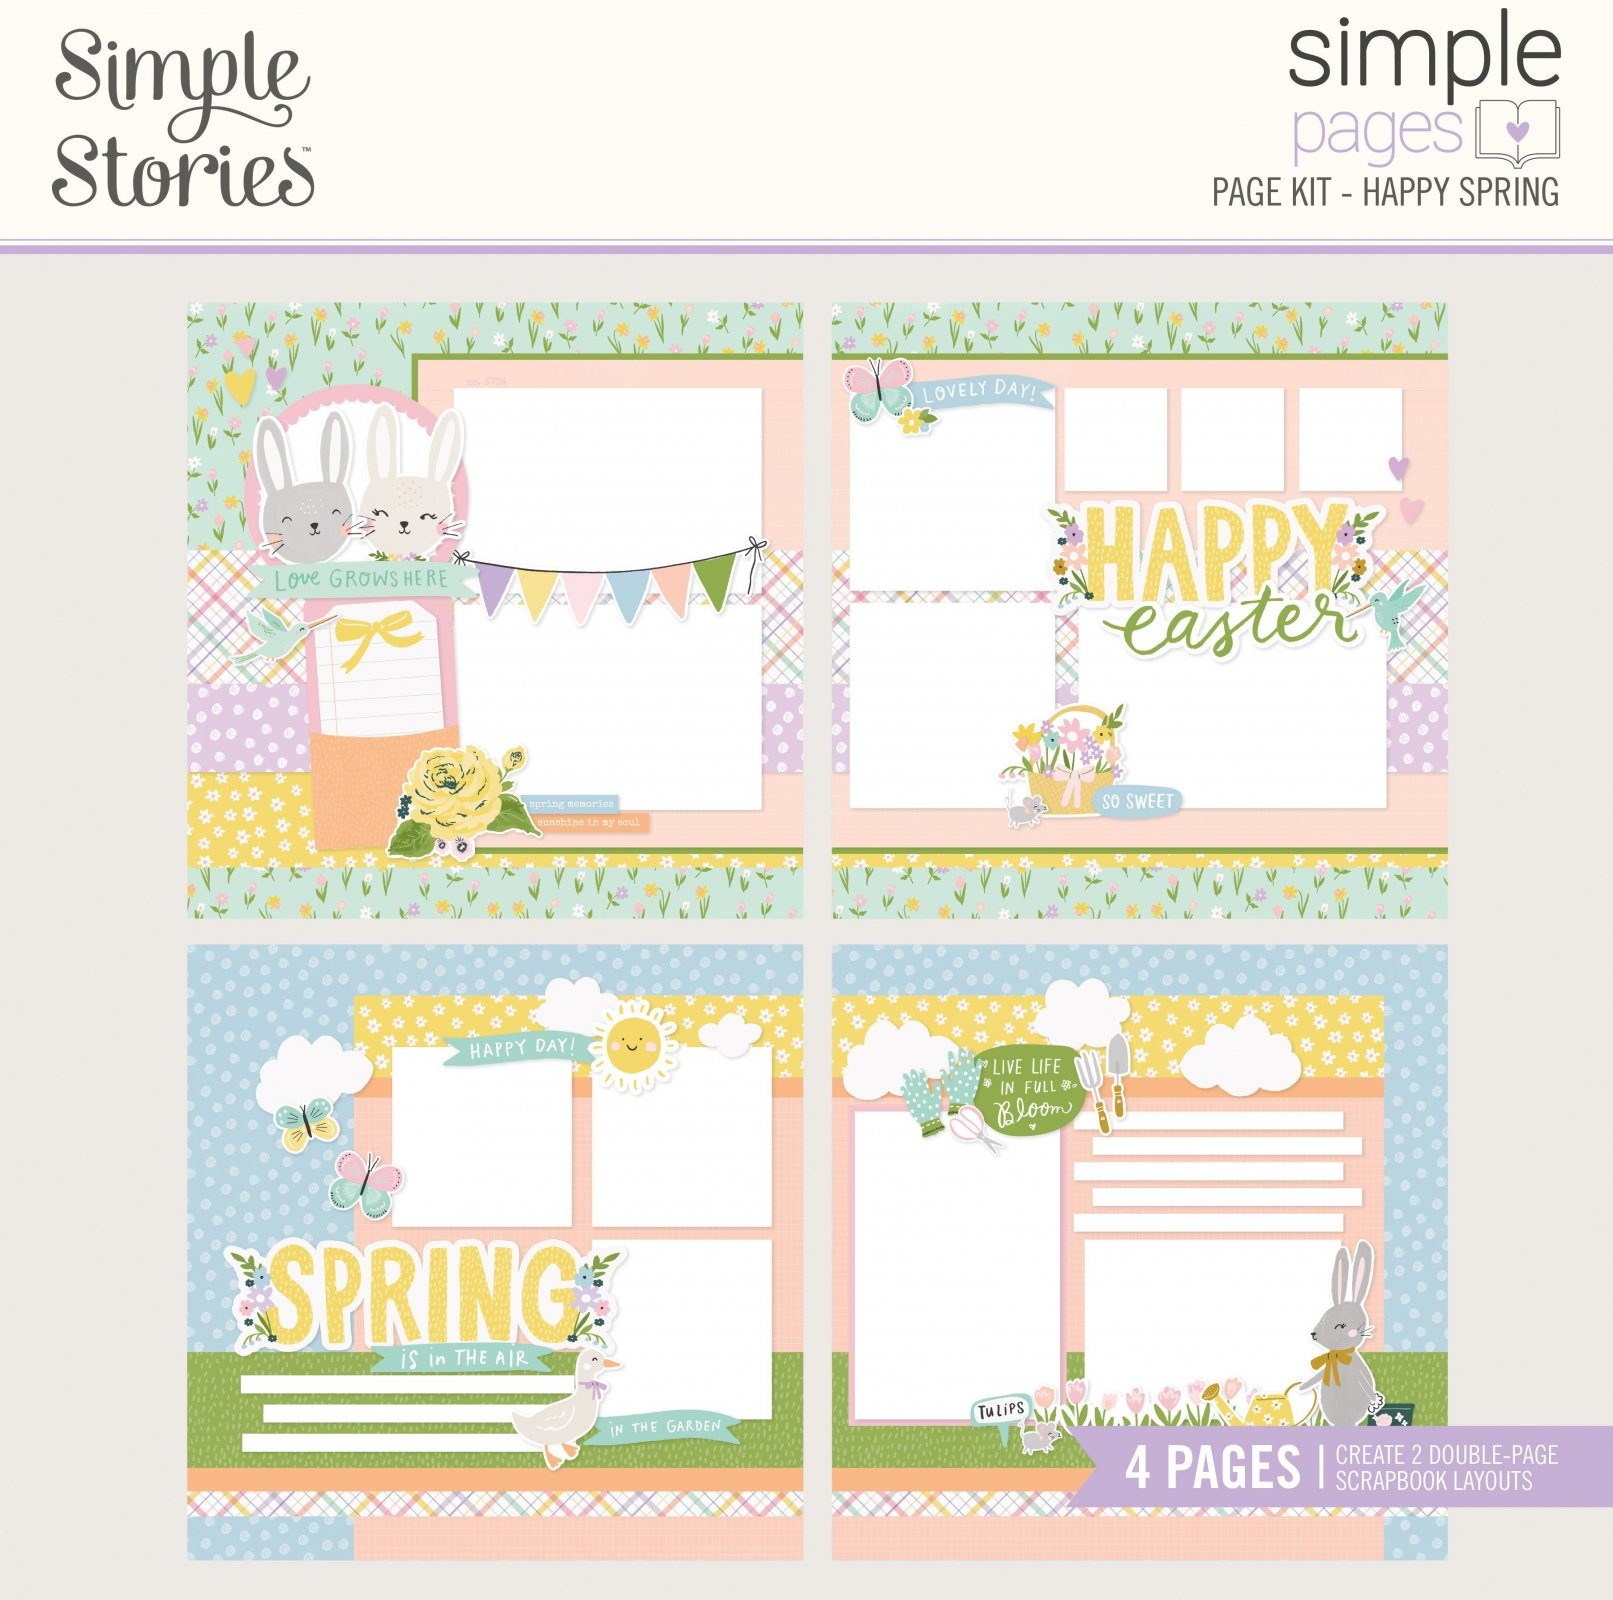 Simple Stories Simple Pages Page Kit - Happy Spring